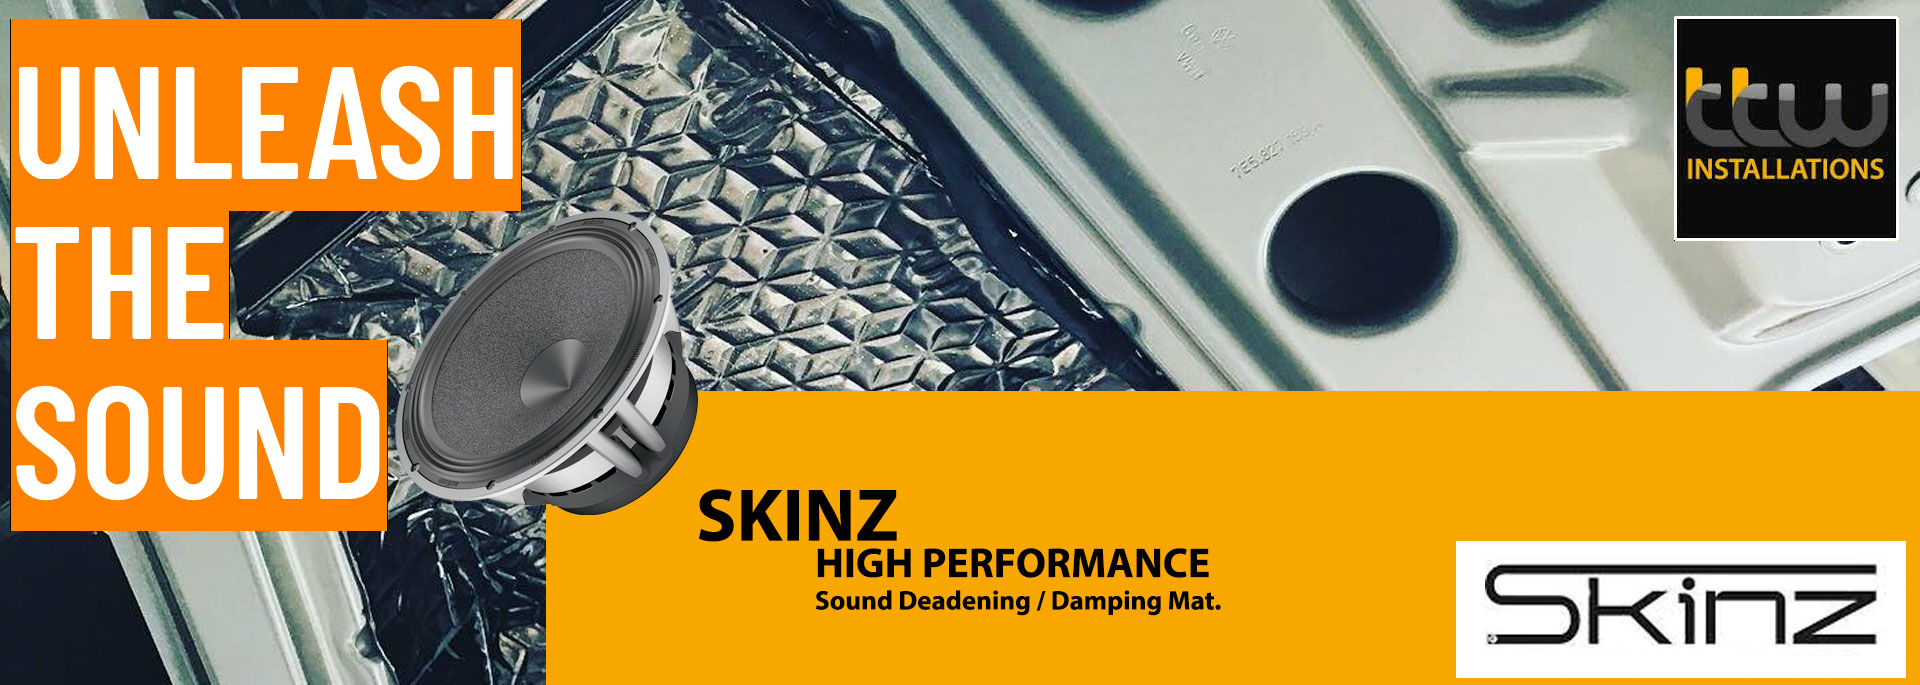 Audison Car Audio Specialists - TTW -  Audison professional Installations - Skinz Sound Proofing